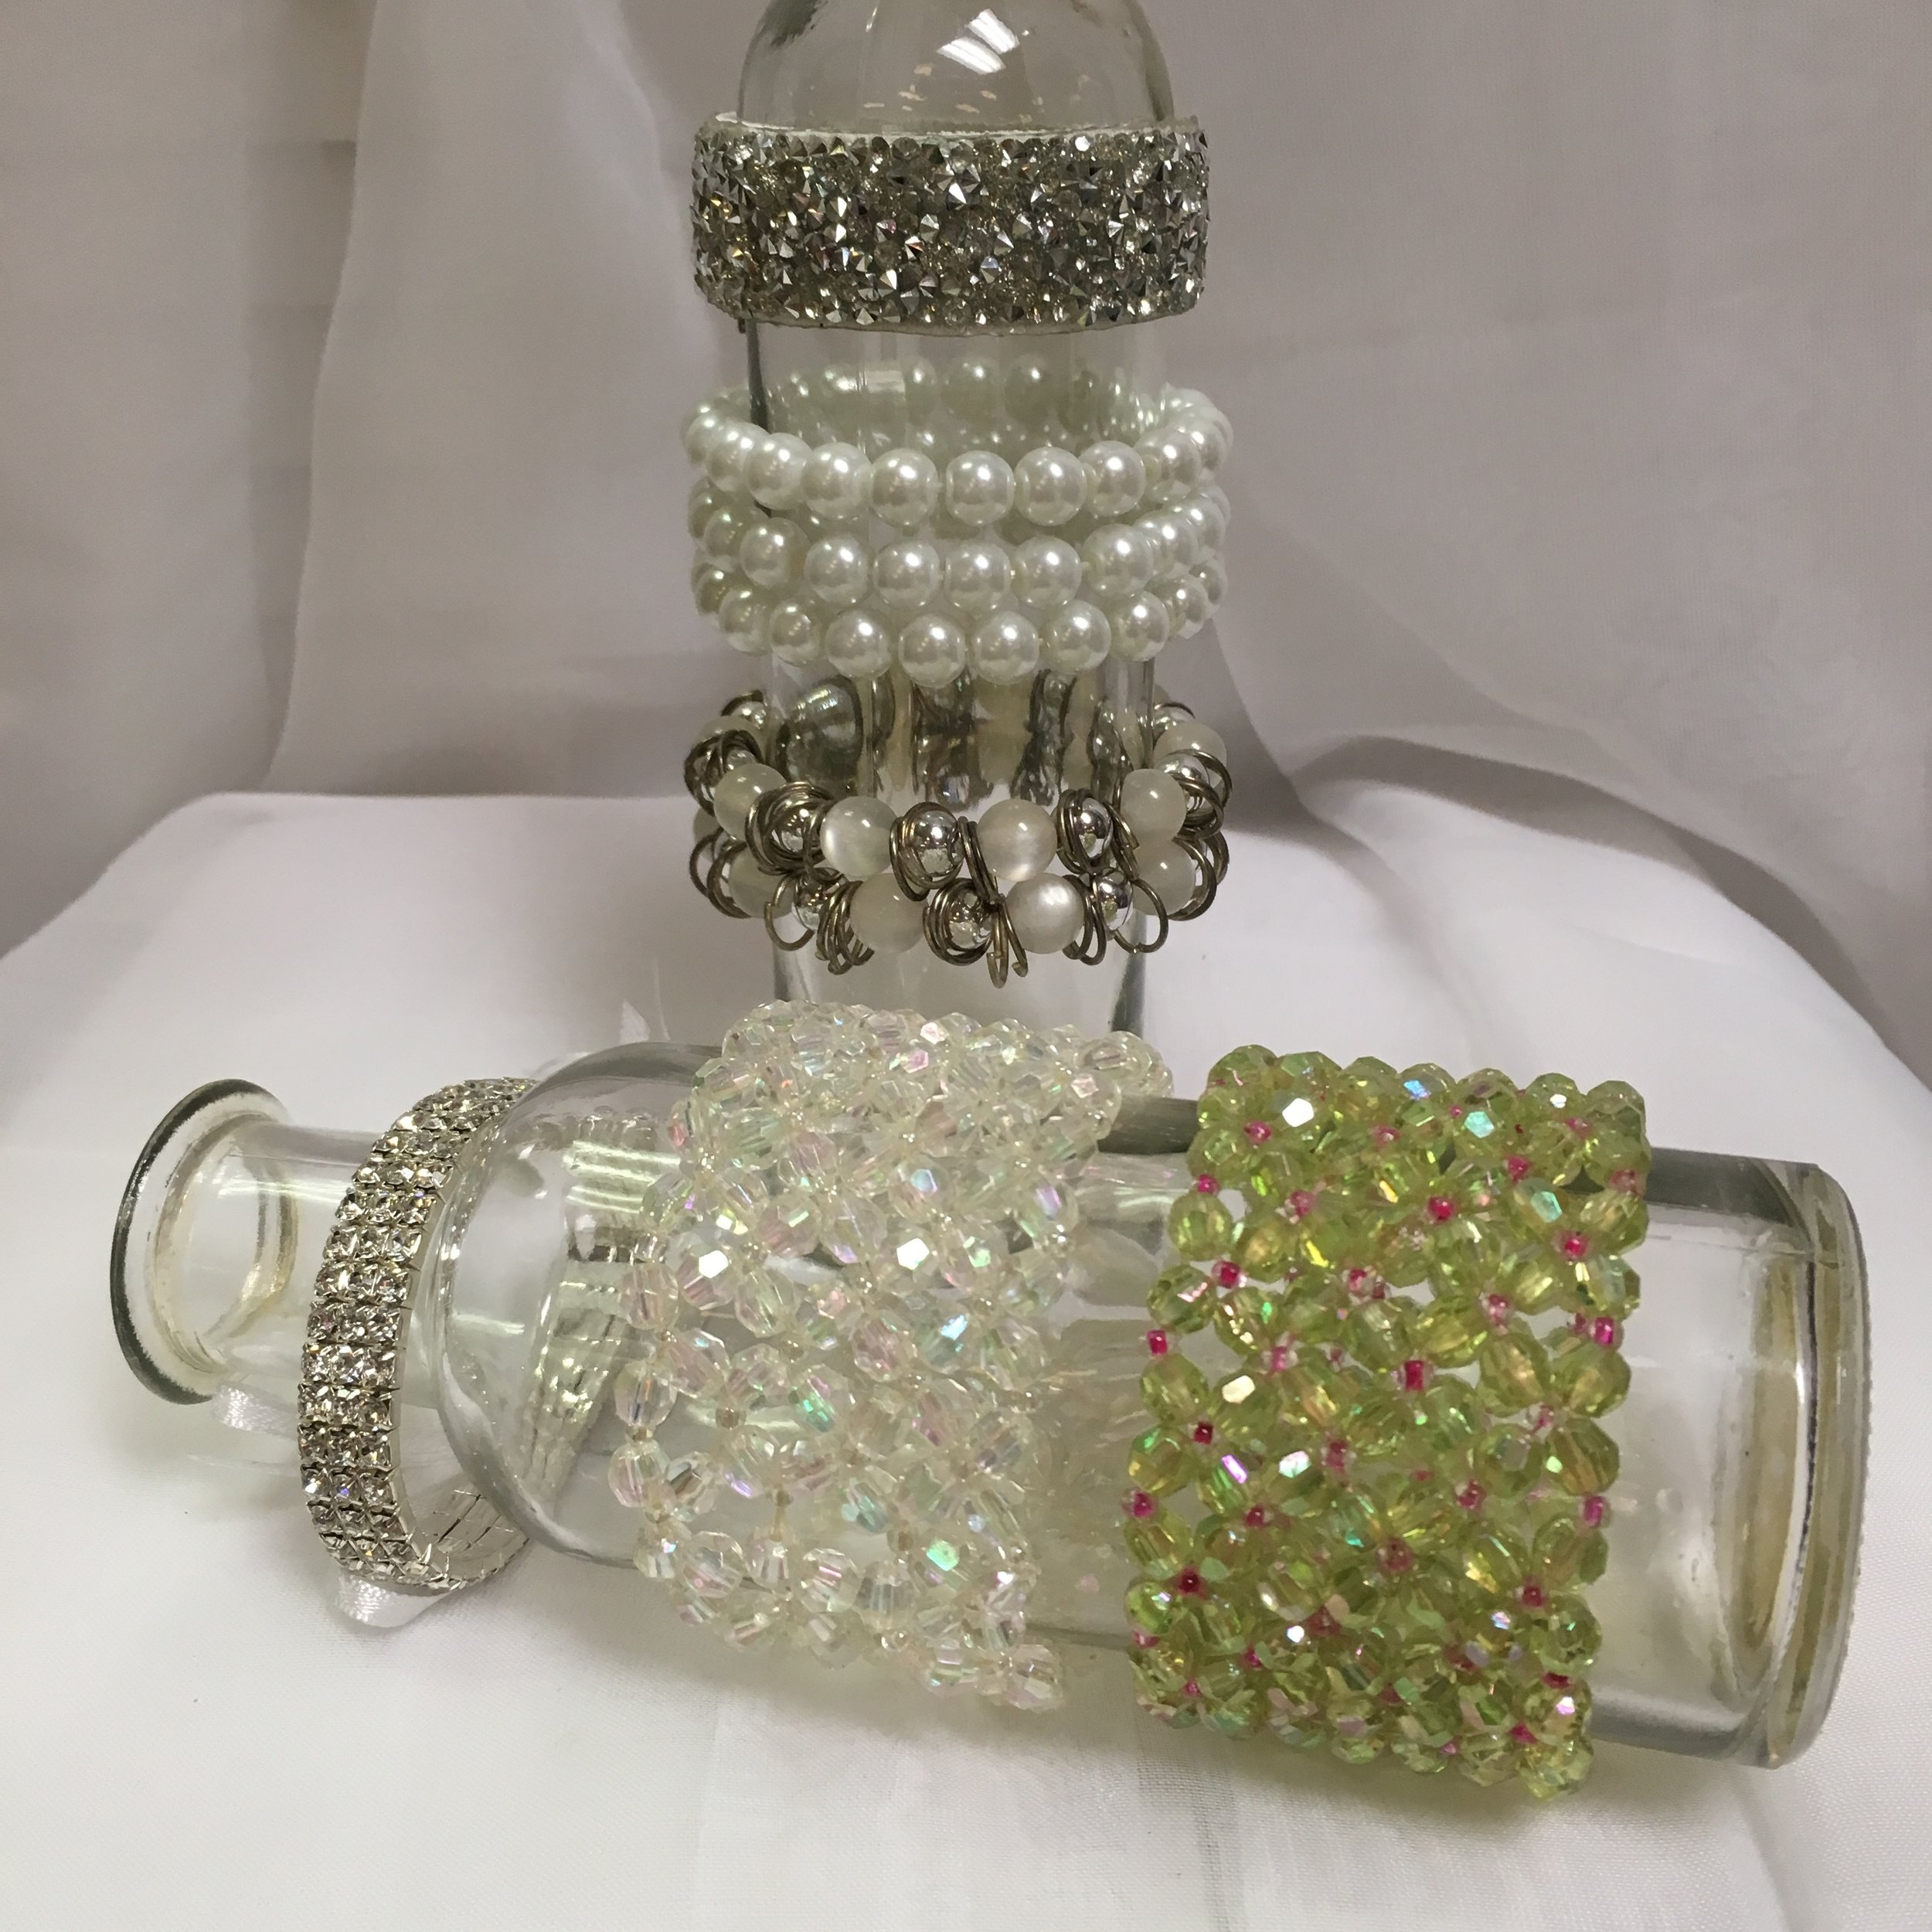 Plus Bracelets: Diamond Road, Pearls, Pearls and Silver Beads; Narrow Rhinestones, Iridescent Beads, Green Beads